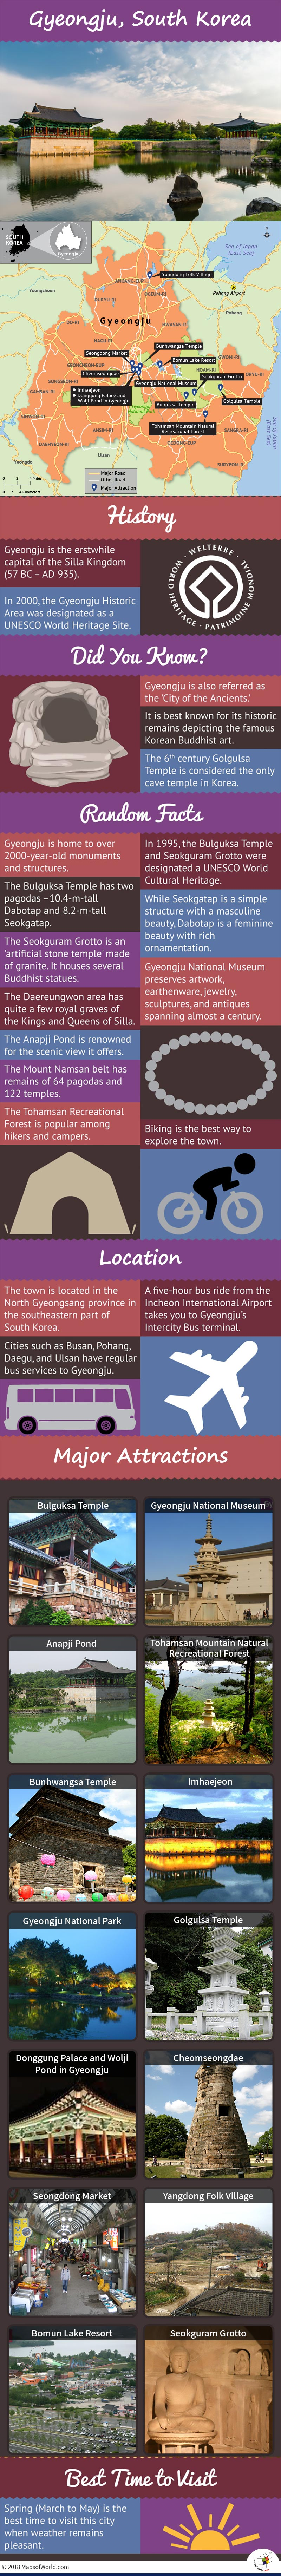 Infographic Depicting Gyeongju Tourist Attractions